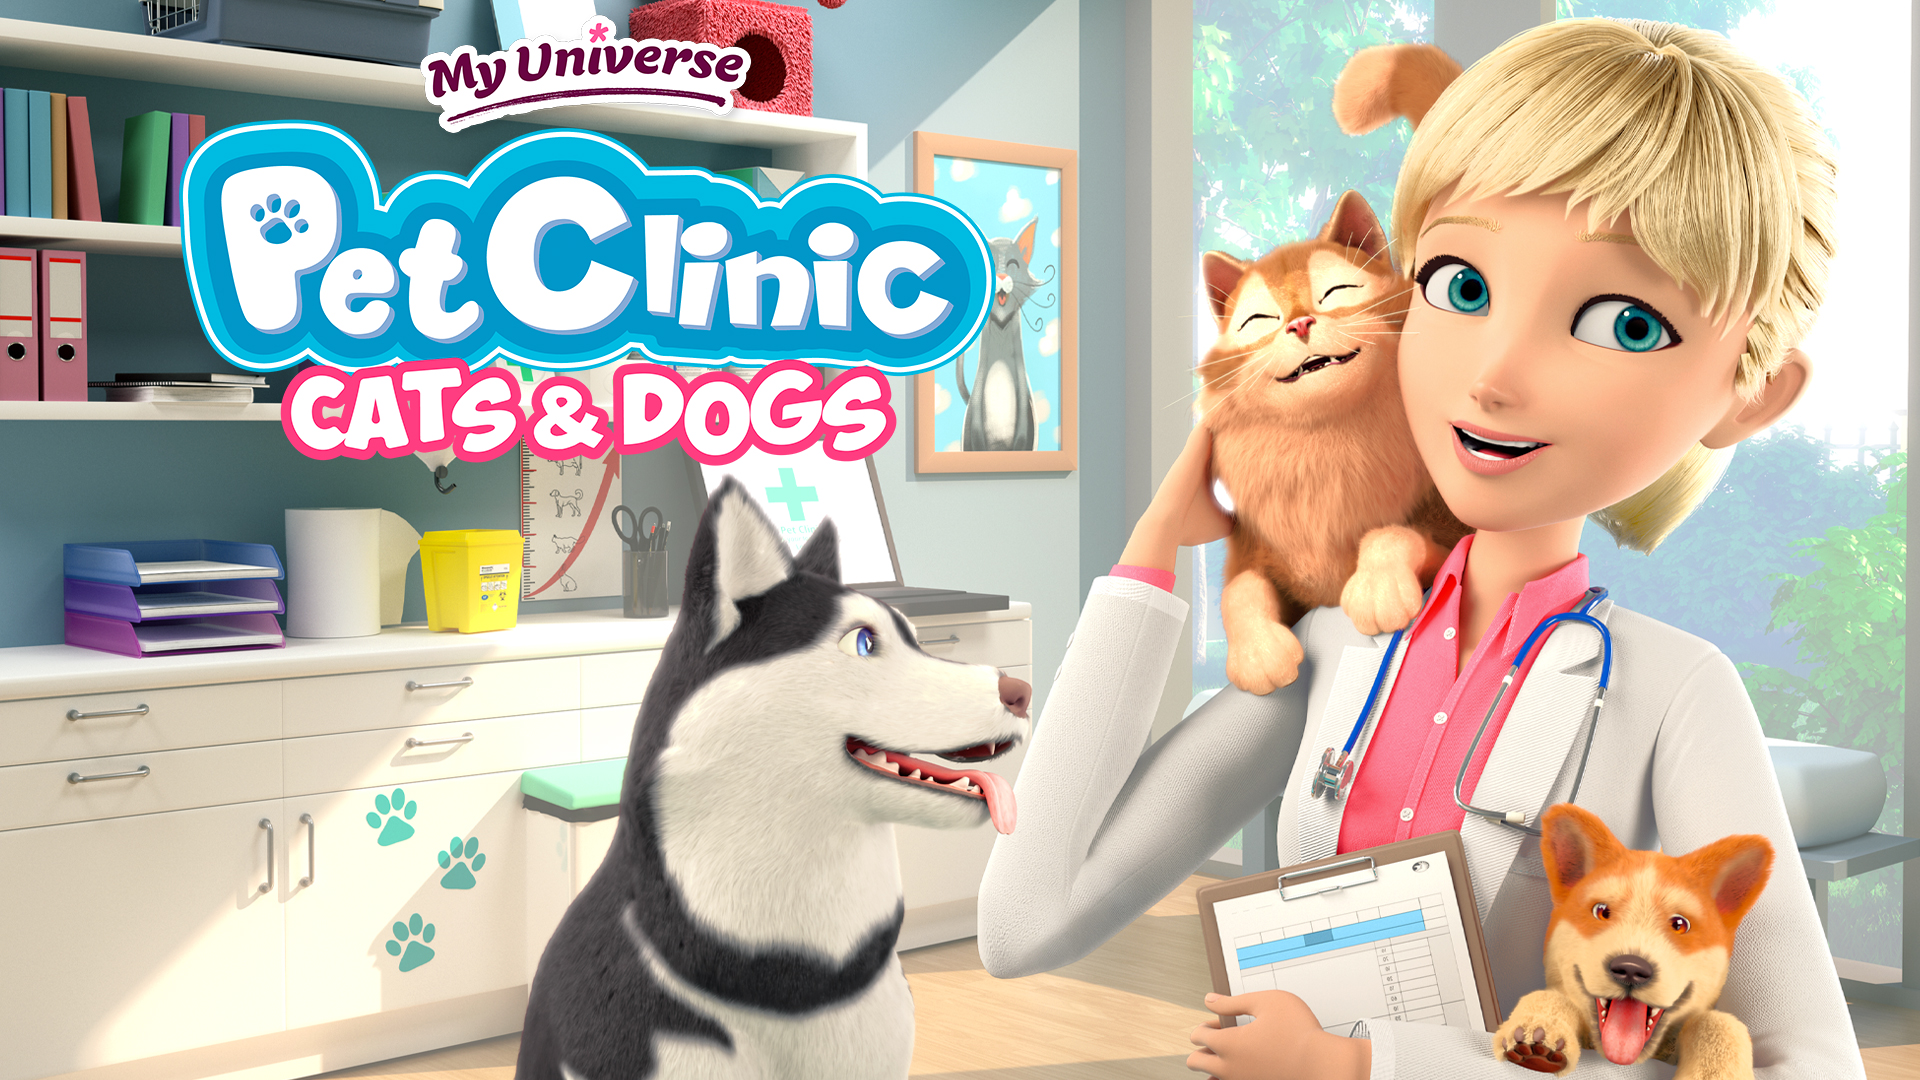 my universe pet clinic cats and dogs video game wallpaper 73518